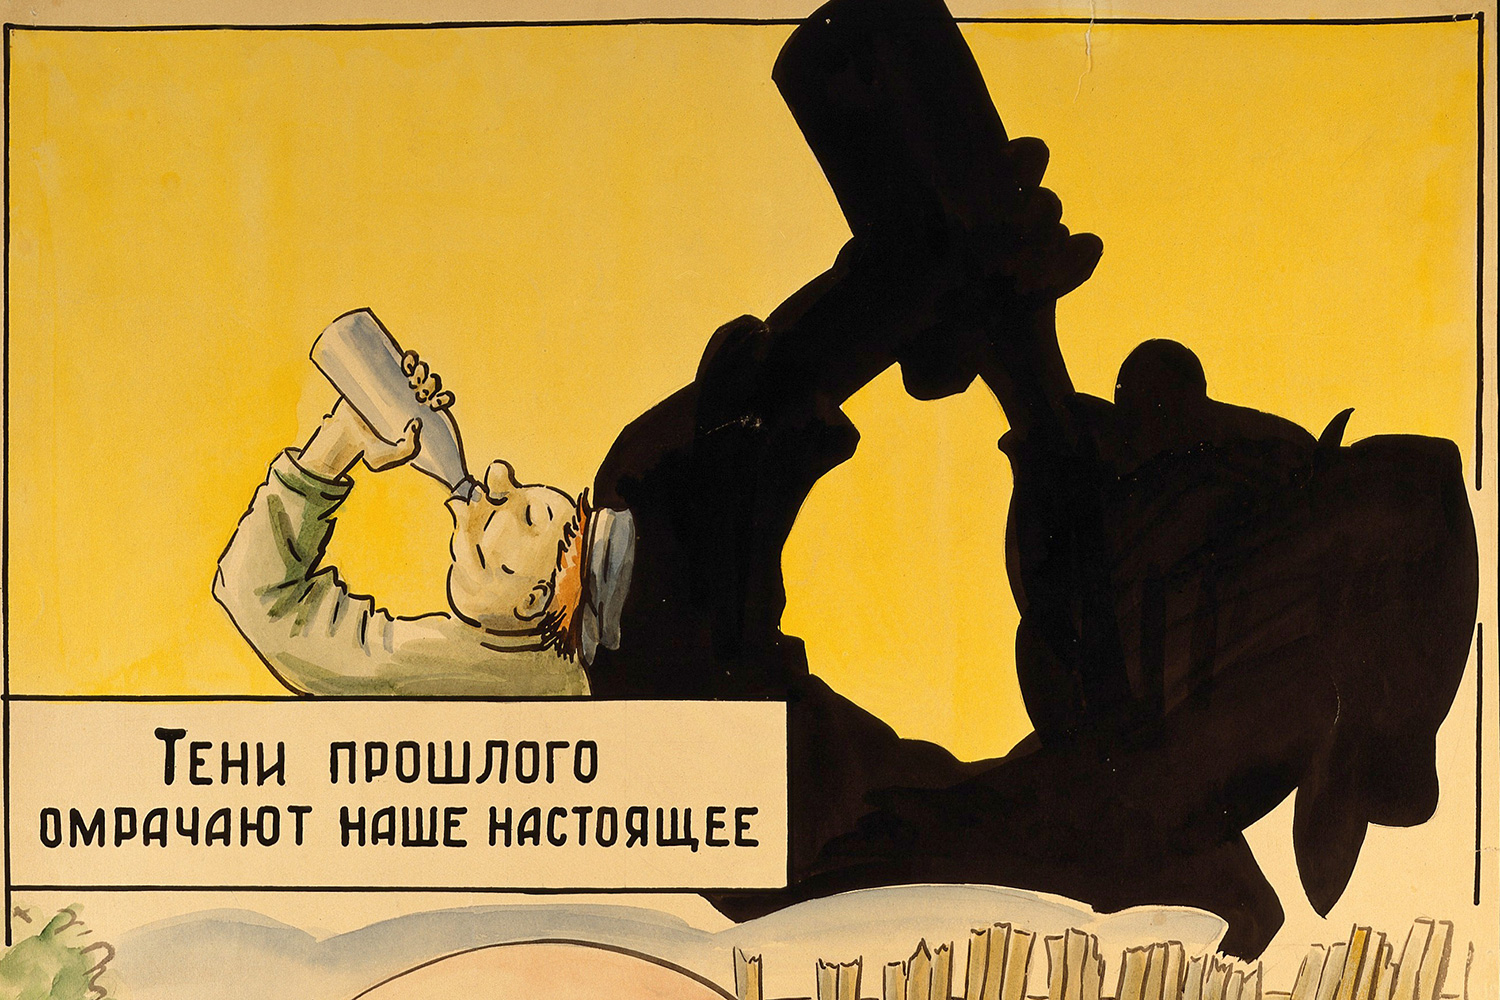 The watercolor image shows a Russian man hefting a bottle and taking a big swig from it. His shadow is cast enlarged, looming over the top of the canvas.